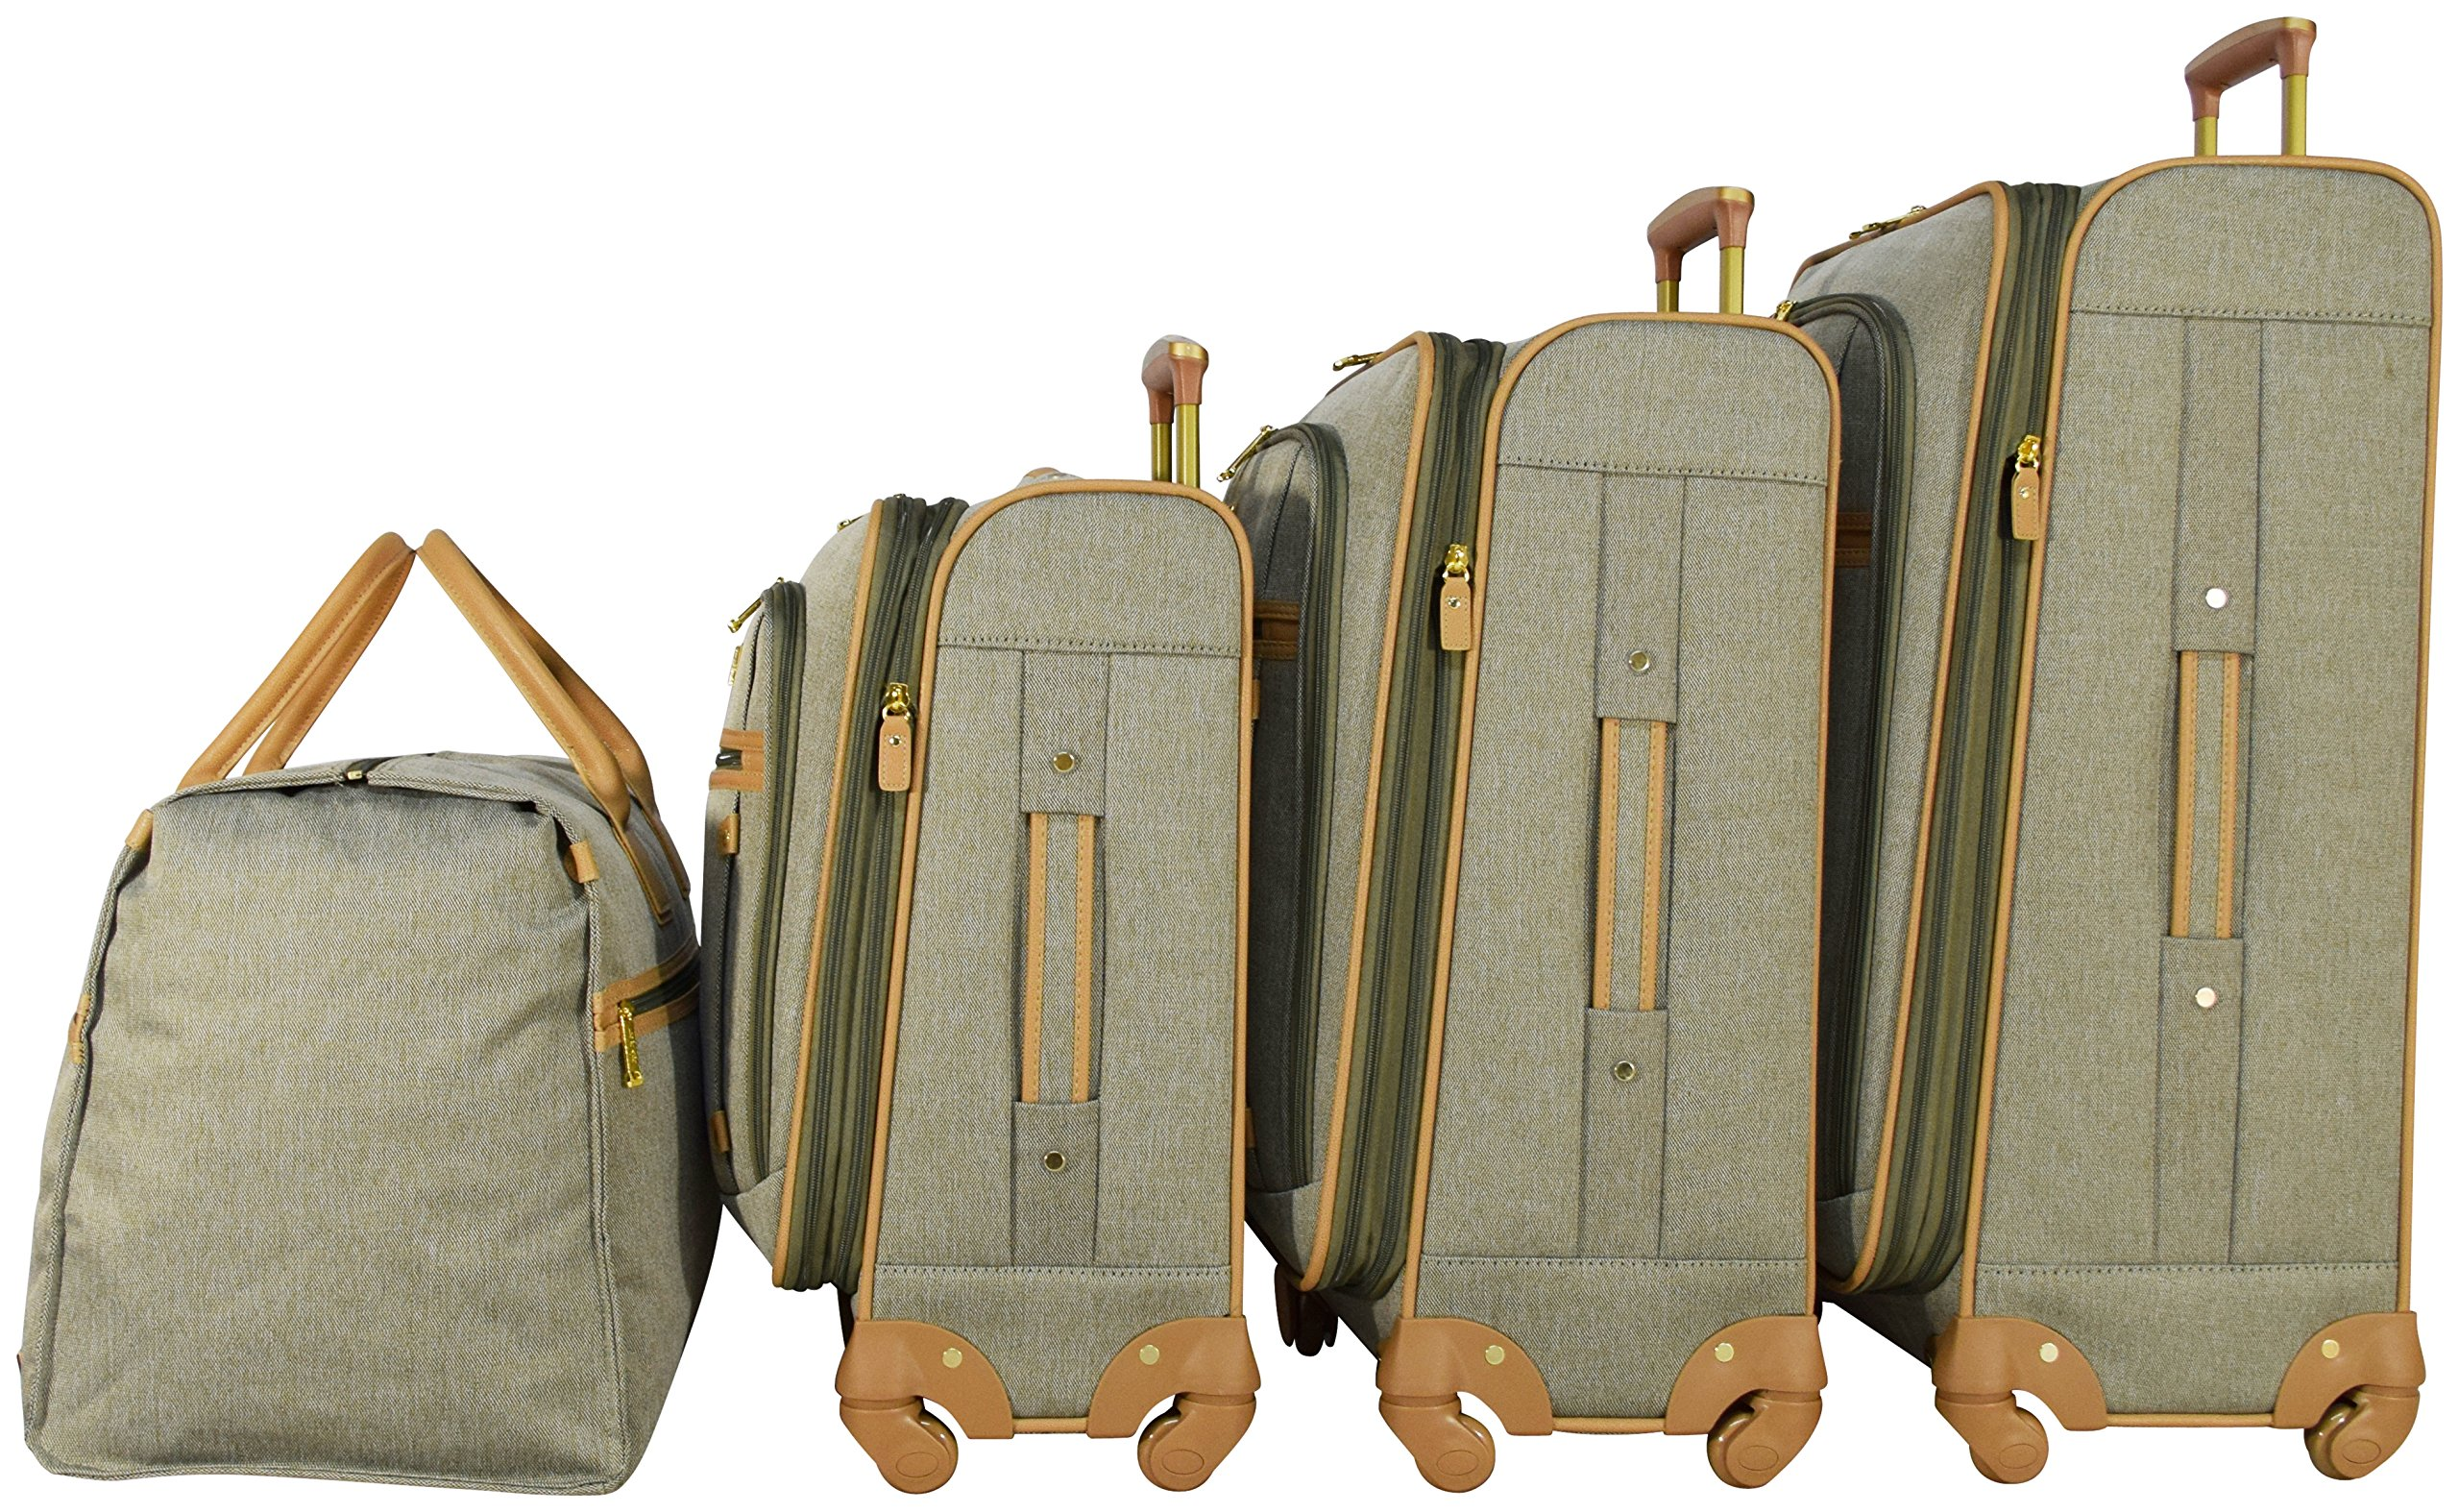 Nicole Miller New York Taylor Set of 4: Box Bag, 20'', 24'', 28'' Expandable Spinner Luggages (Green) by Nicole Miller (Image #3)